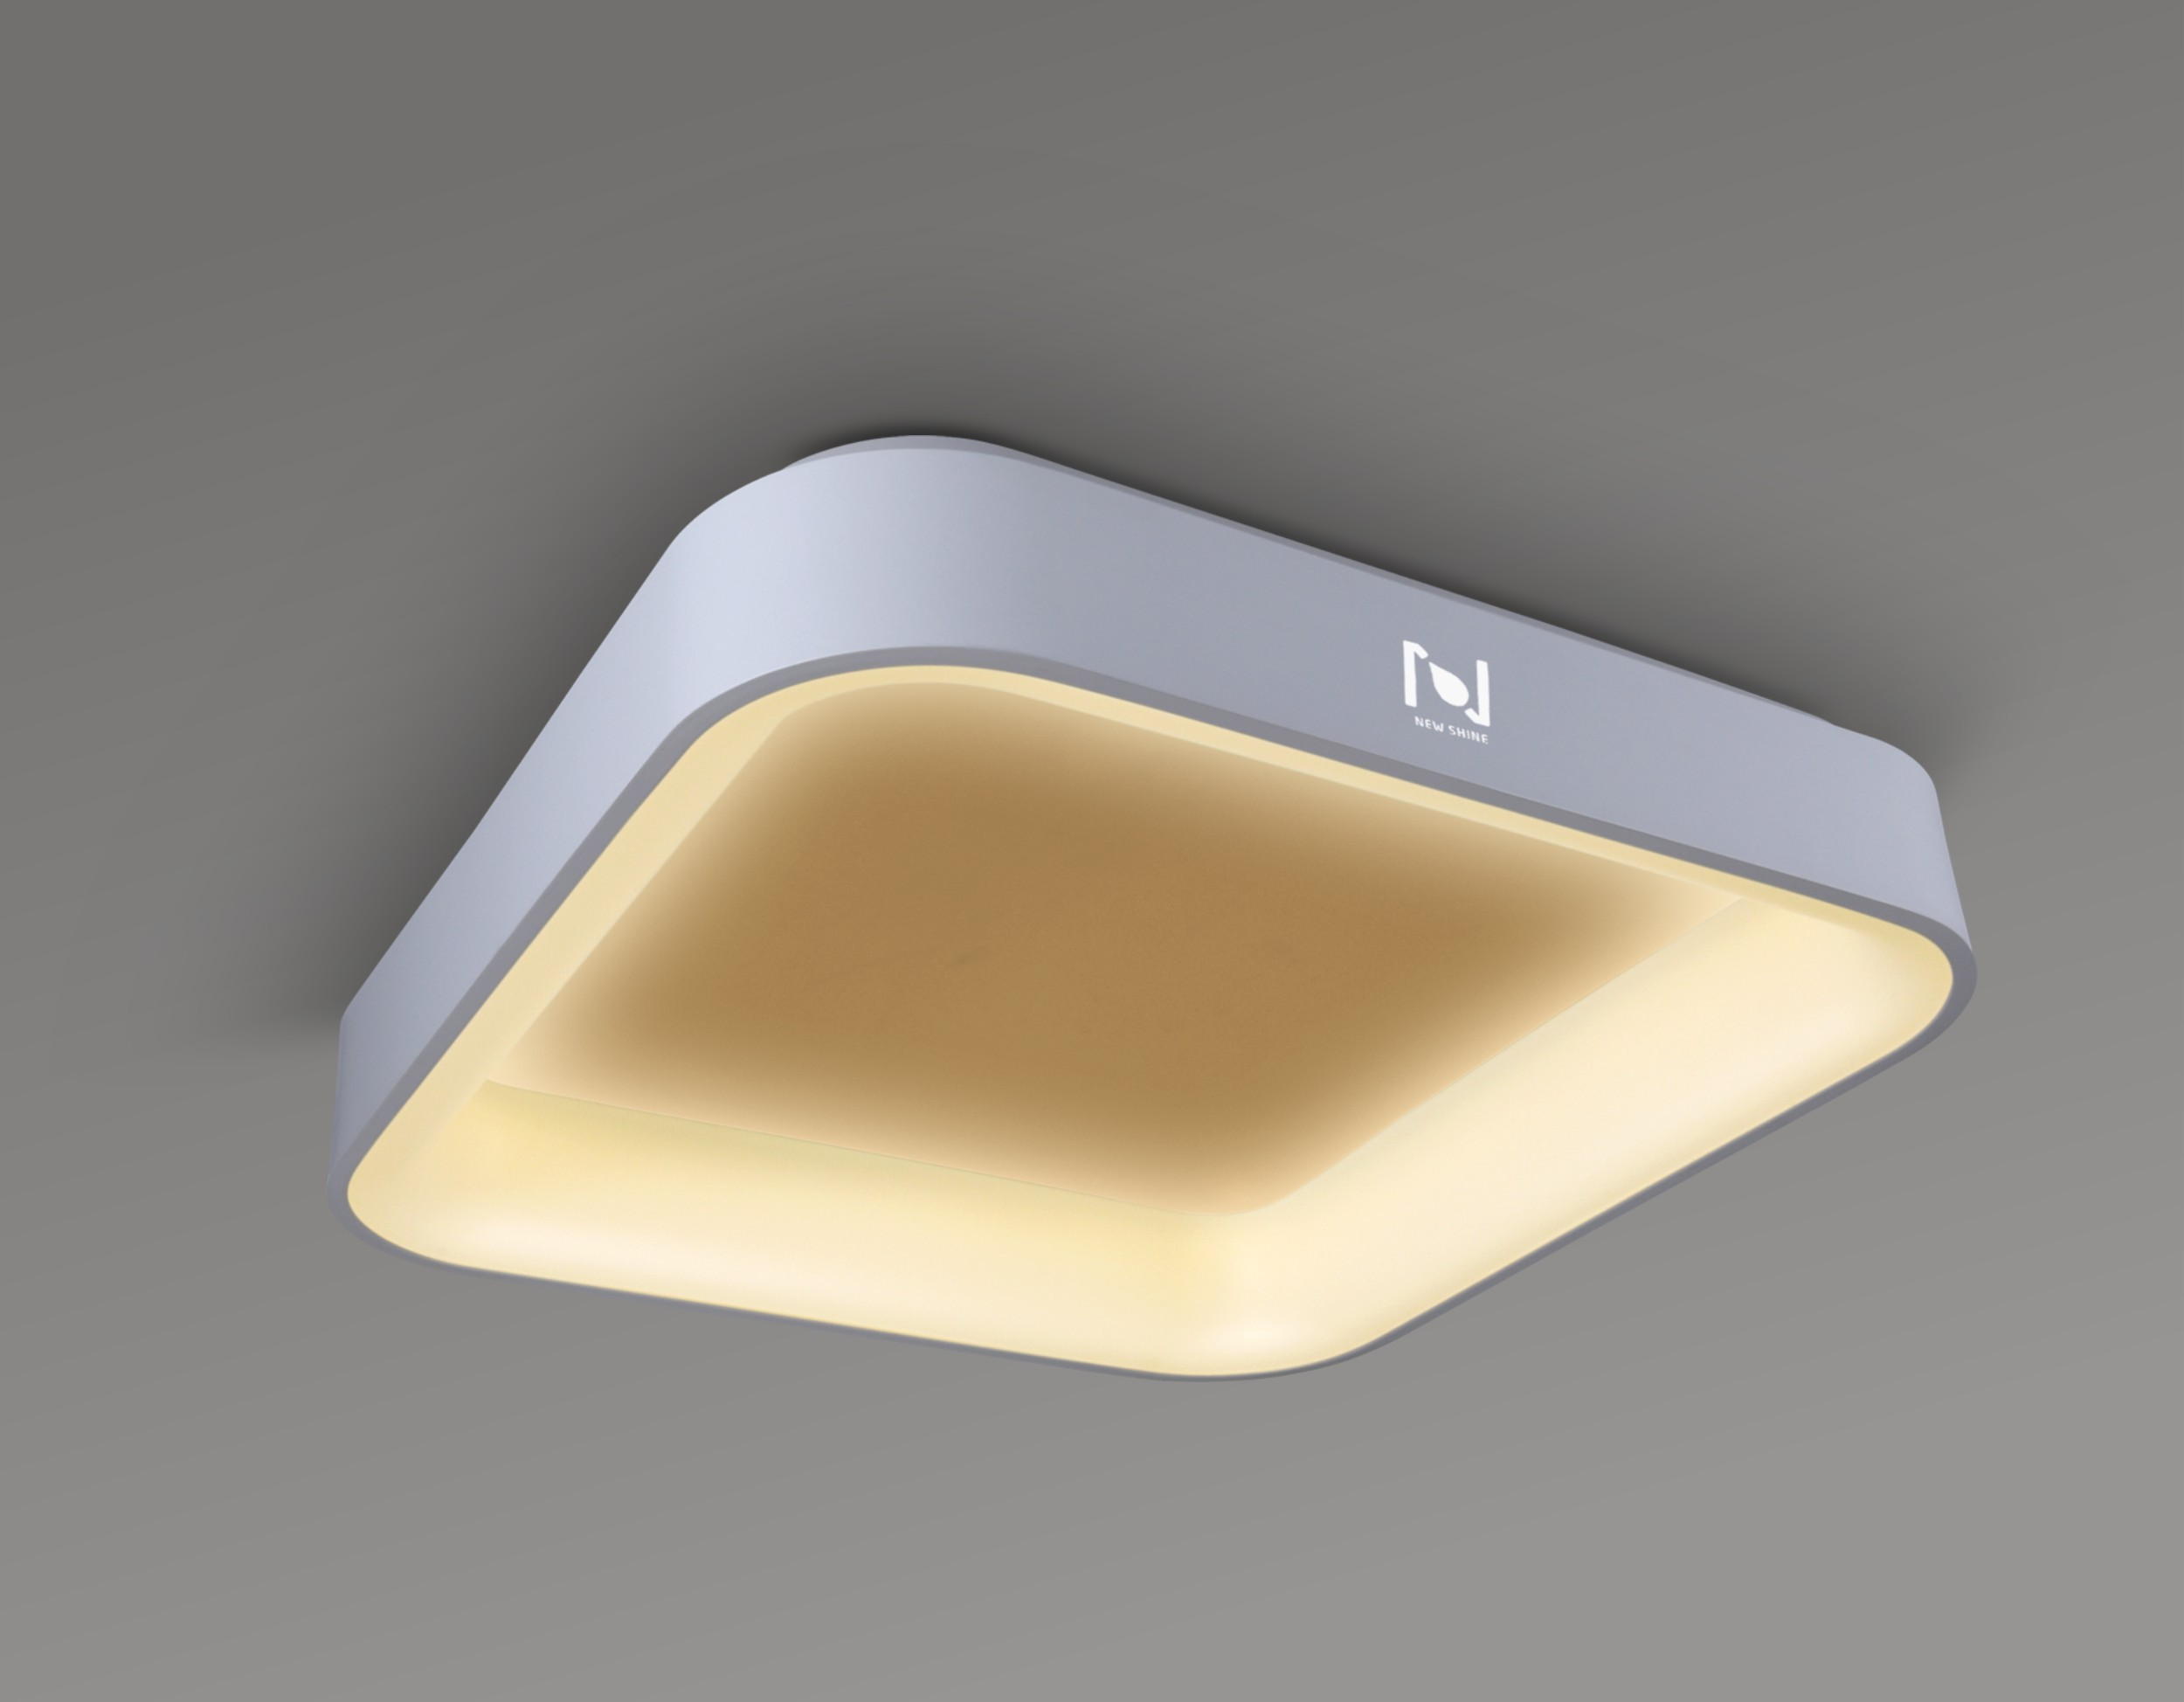 MOUNTED DECORATIVE LIGHTING  SQUARE LED SKY LIGHT LL0202M-50W